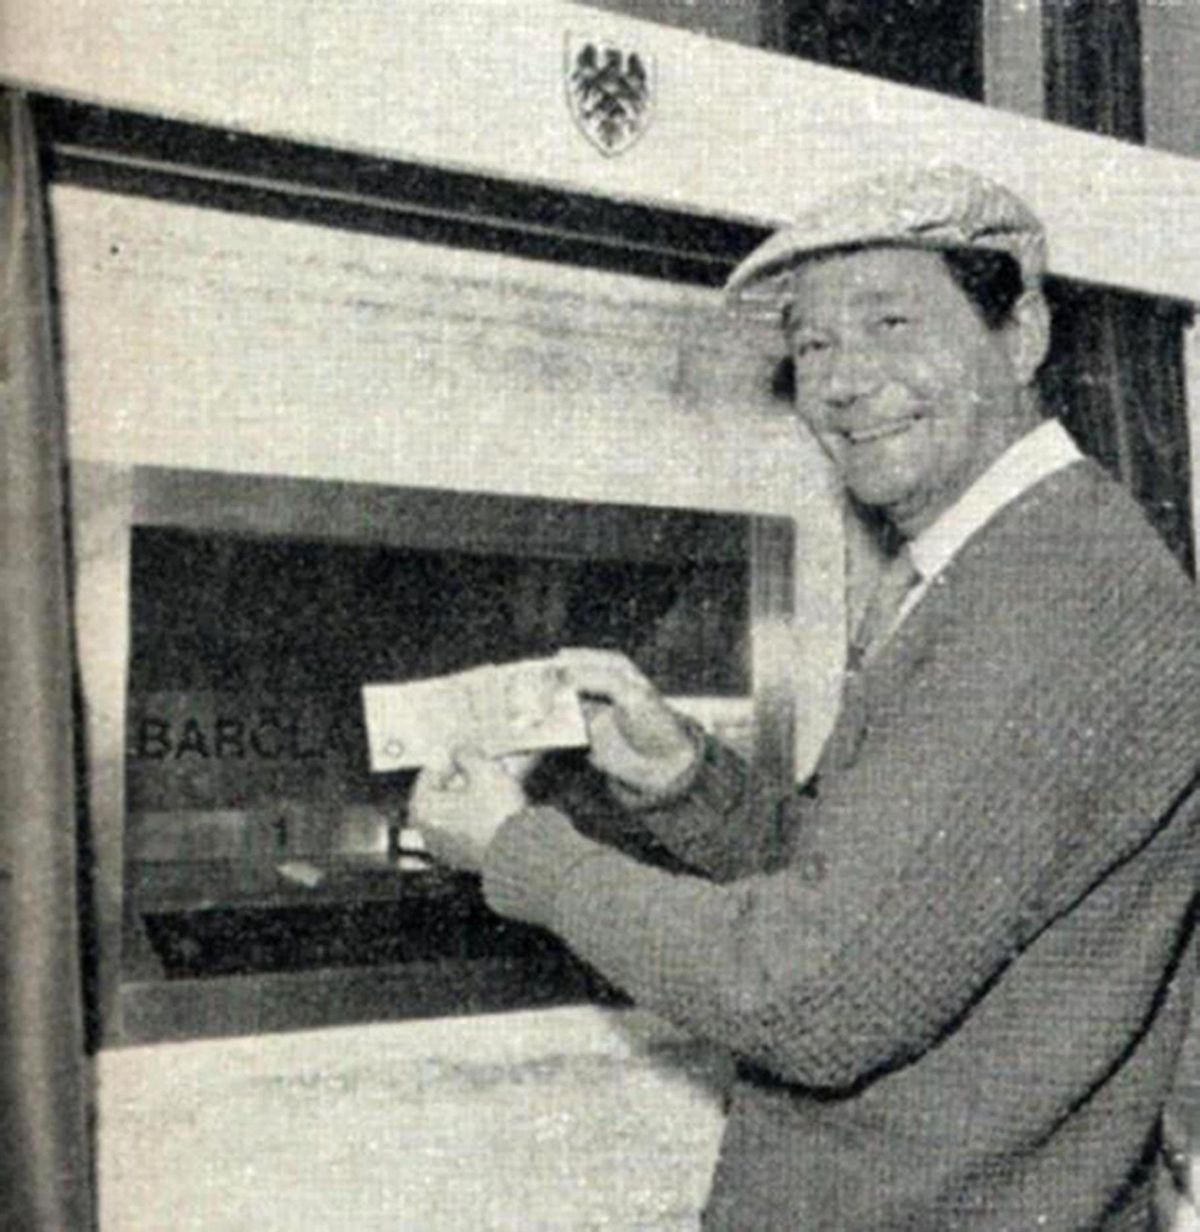 Comedy actor Reg Varney becomes the first customer to use a cashpoint 50 years ago